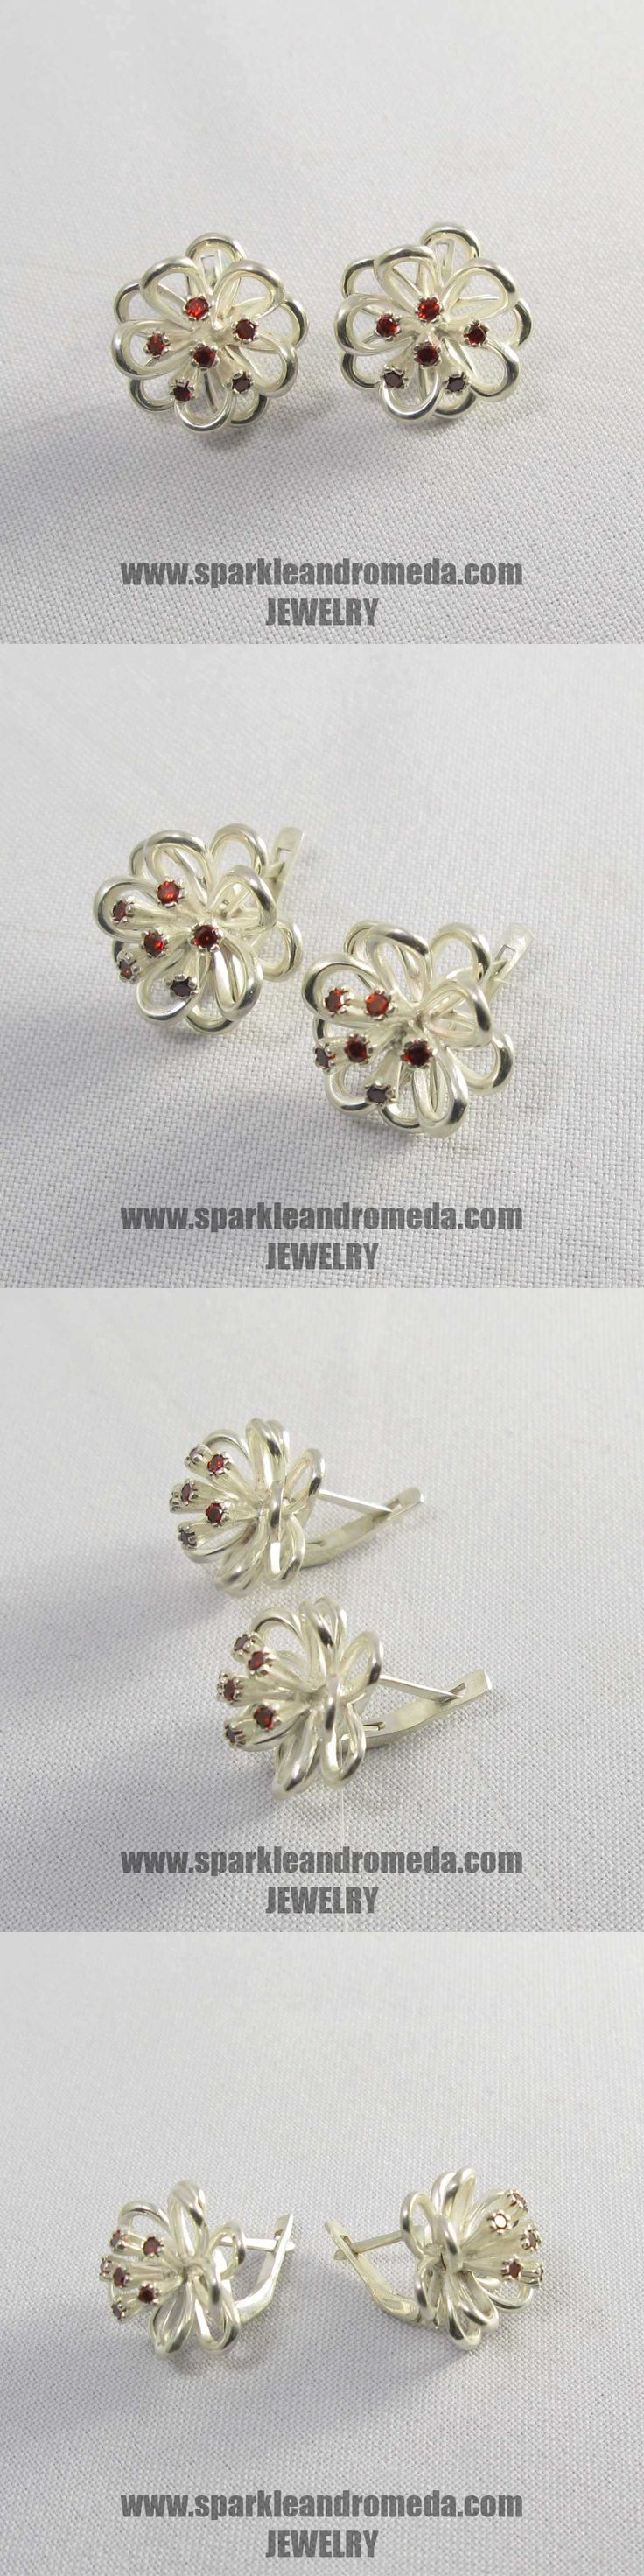 Sterling 925 silver earrings with 12 round 2 mm red almandine color cubic zirconia gemstones.